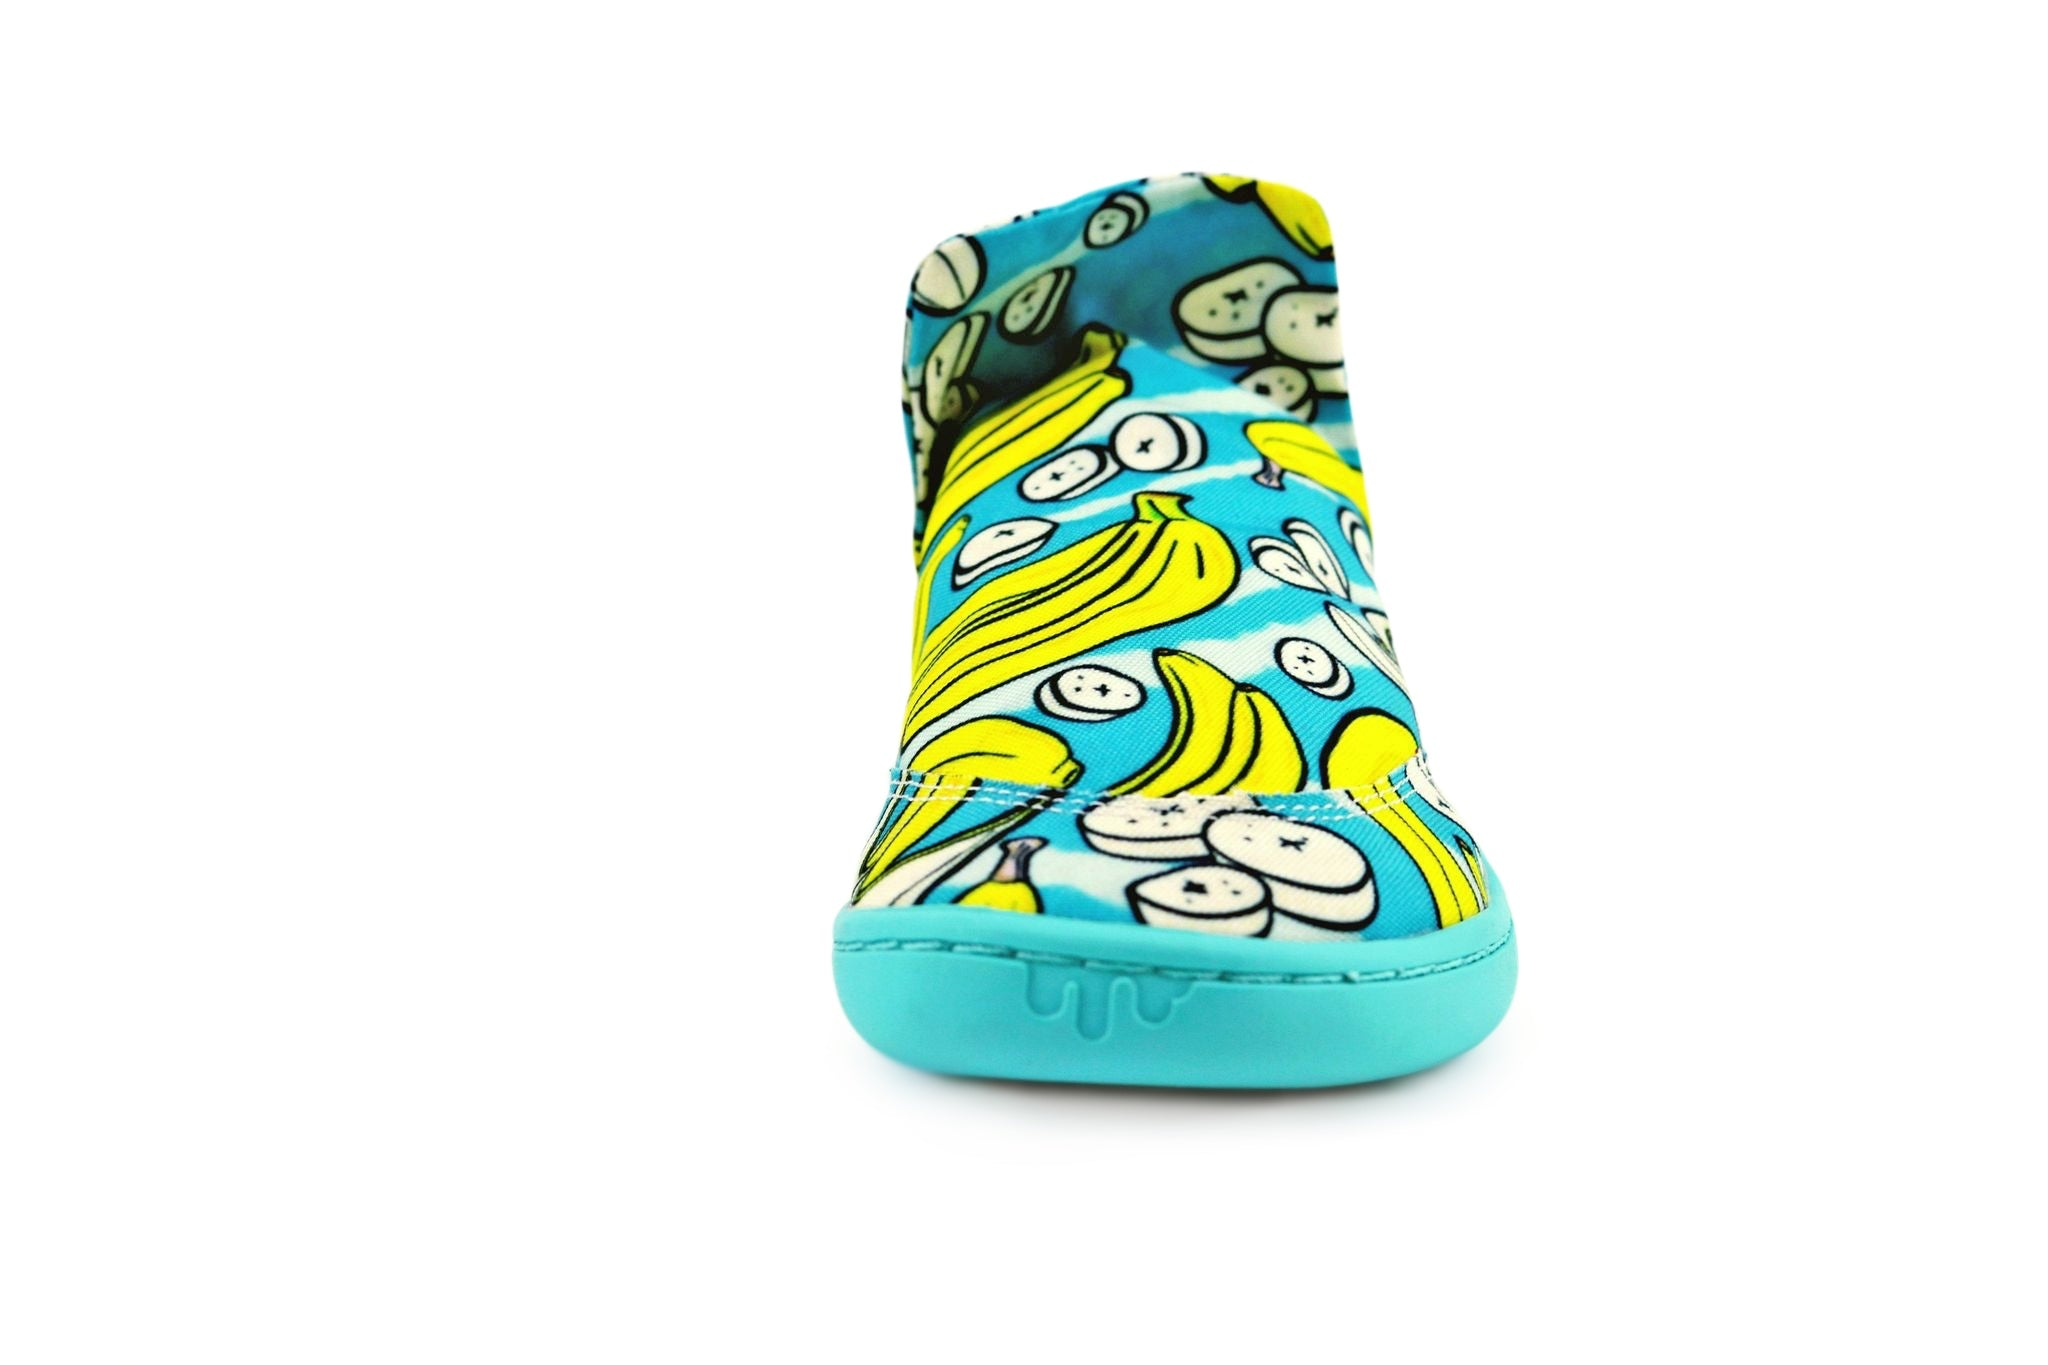 Front view of signature style PaperKrane shoe with banana print.